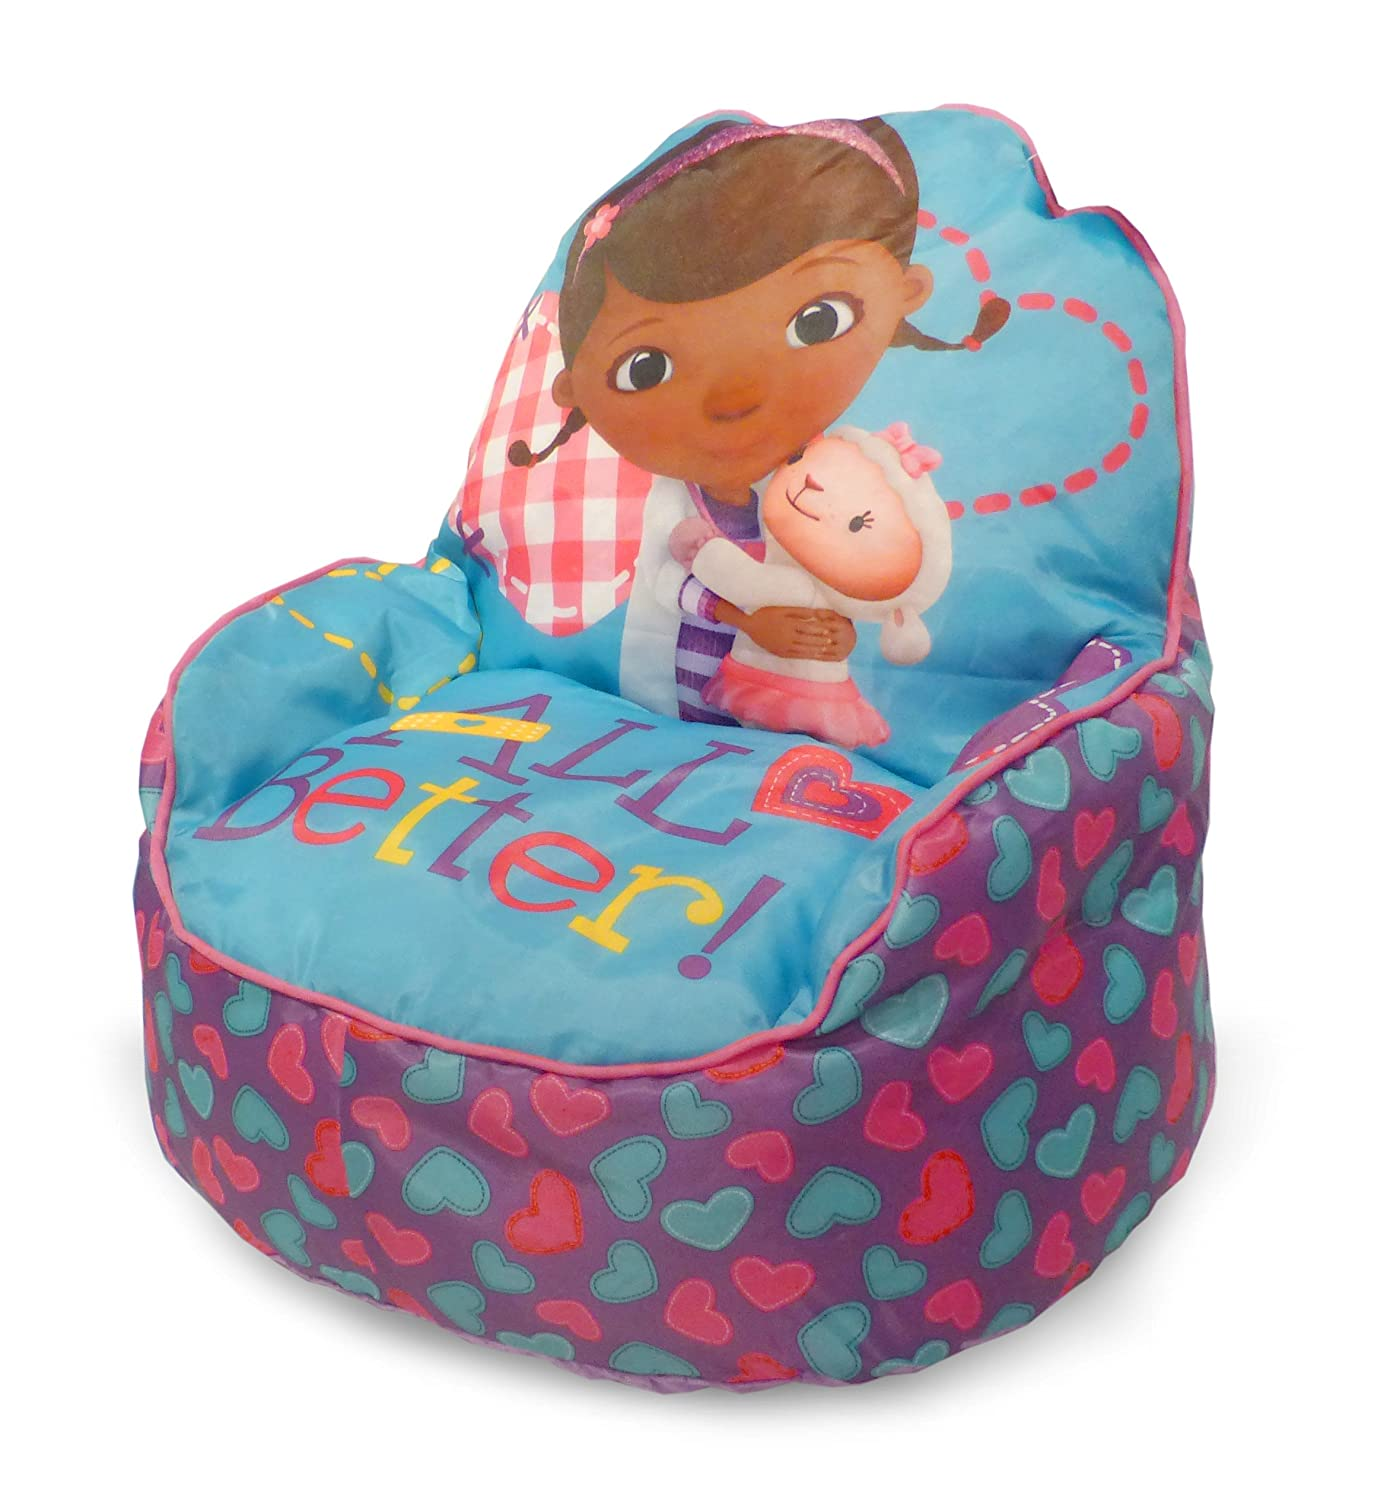 Amazon.com: Disney Doc McStuffins Toddler Bean Bag Sofa Chair: Toys & Games - Amazon.com: Disney Doc McStuffins Toddler Bean Bag Sofa Chair